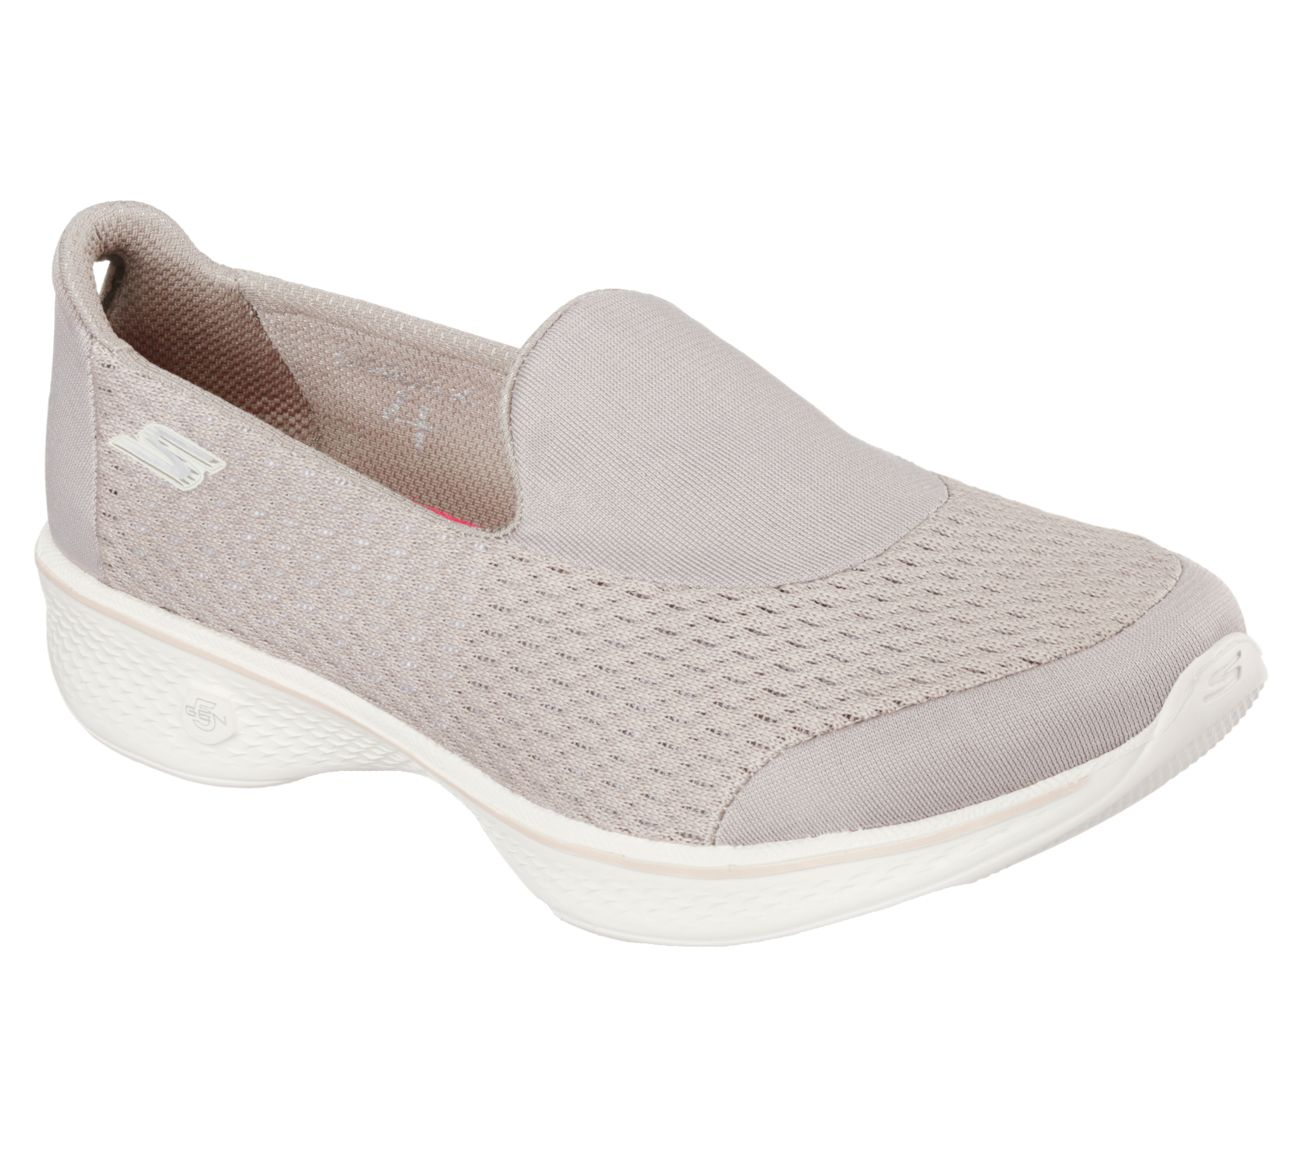 GOwalk 4 - Pursuit | Skechers, Mesh fabric and Soft fabrics